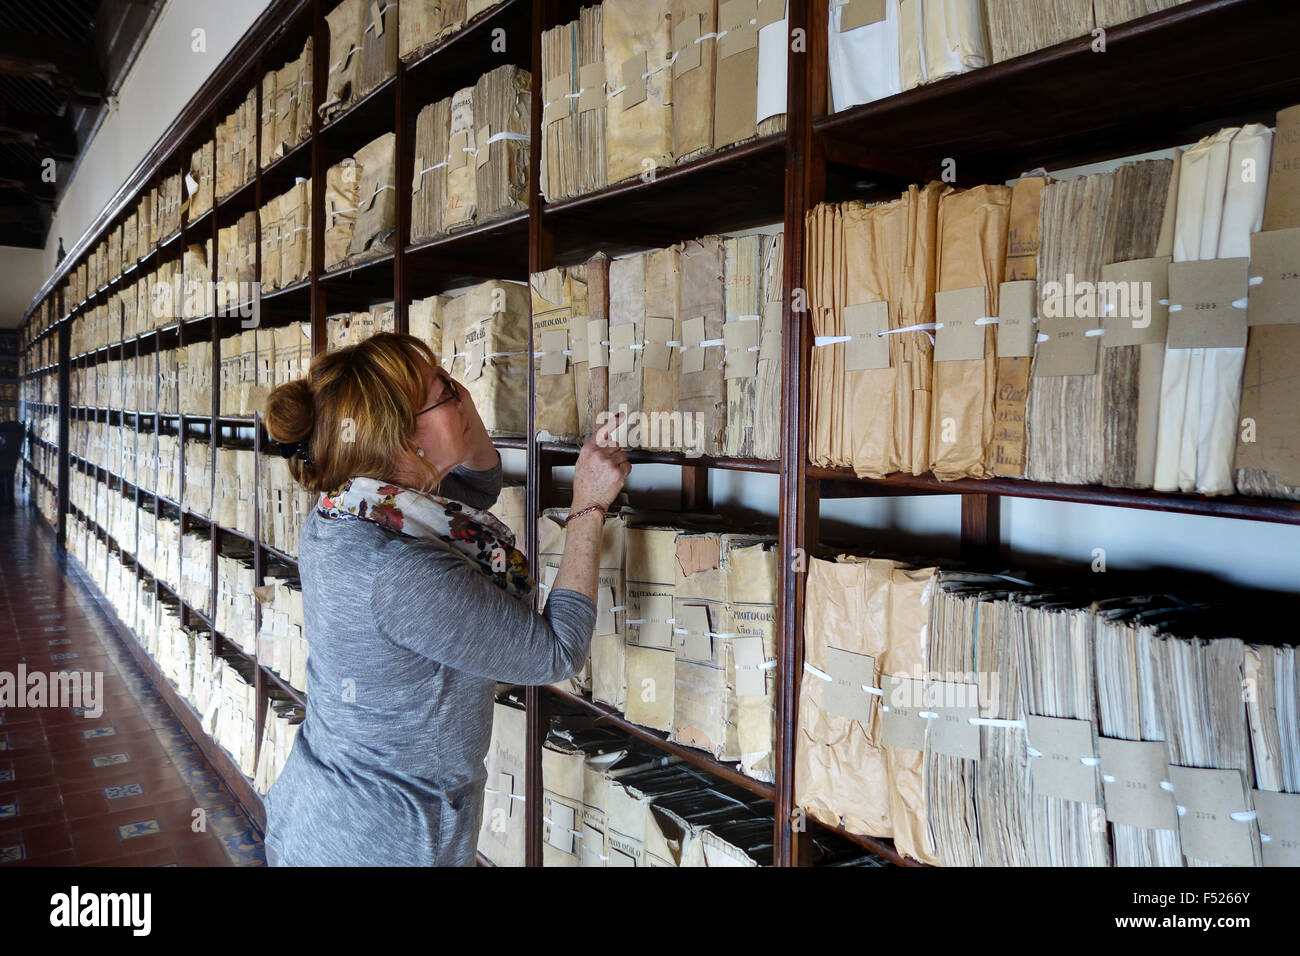 w researching the archives of palacio de las cadenas ograve beda stock photo w researching the archives of palacio de las cadenas ogravebeda andalusia spain